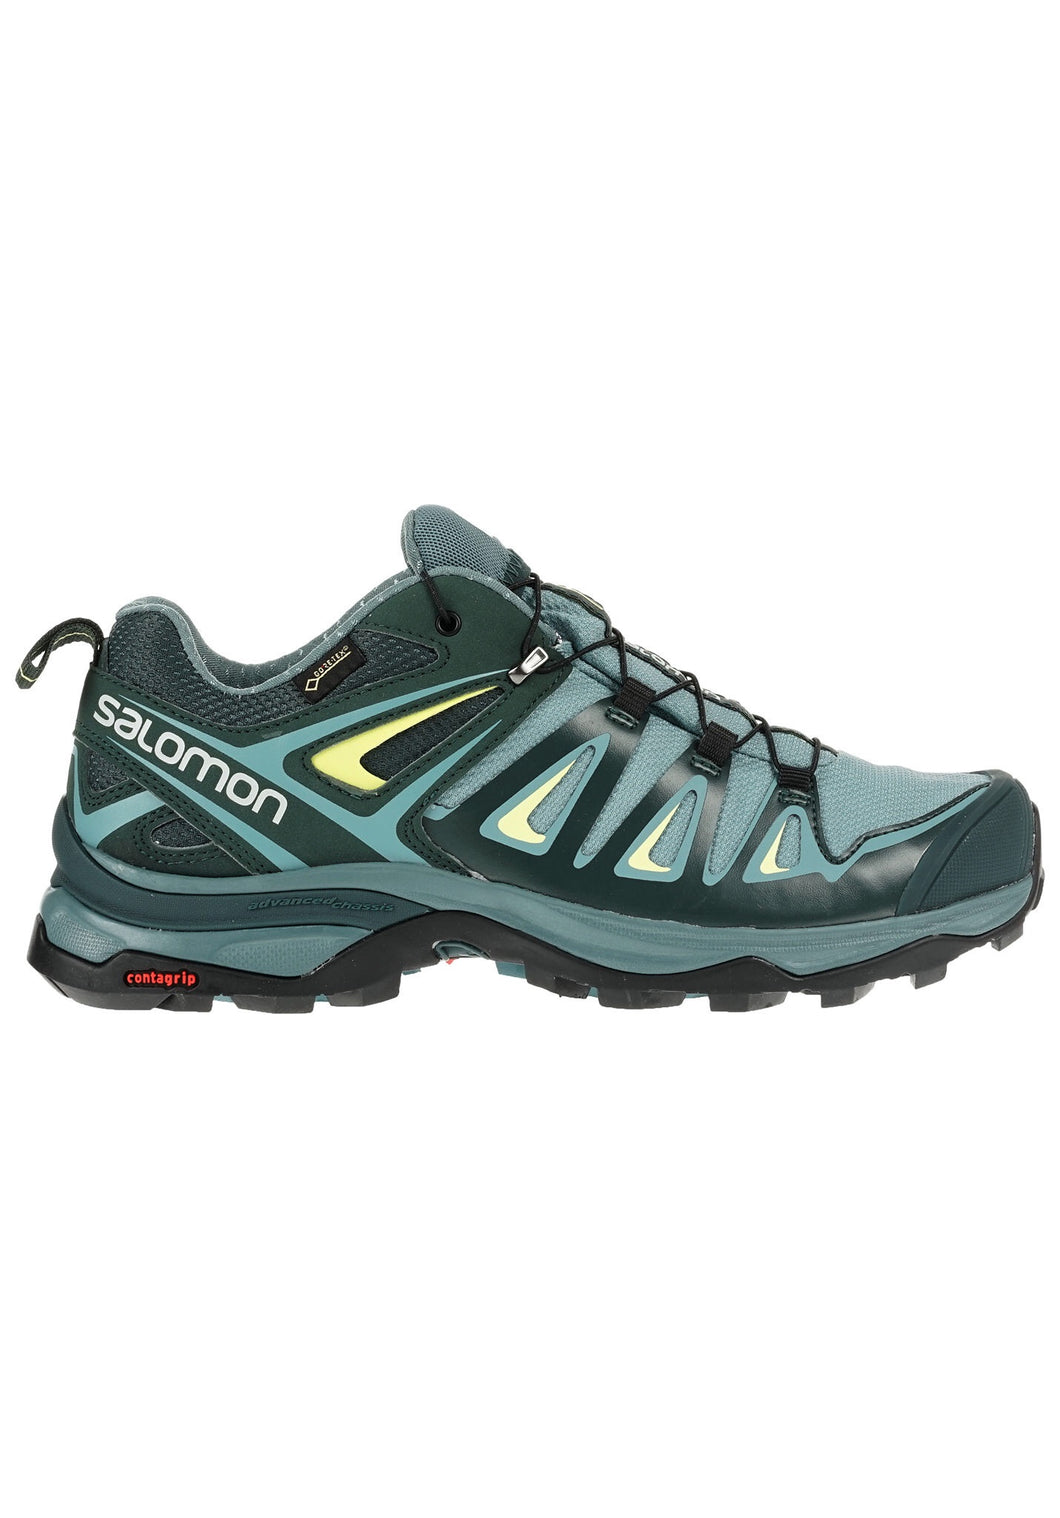 X Ultra 3 GTX by Salomon